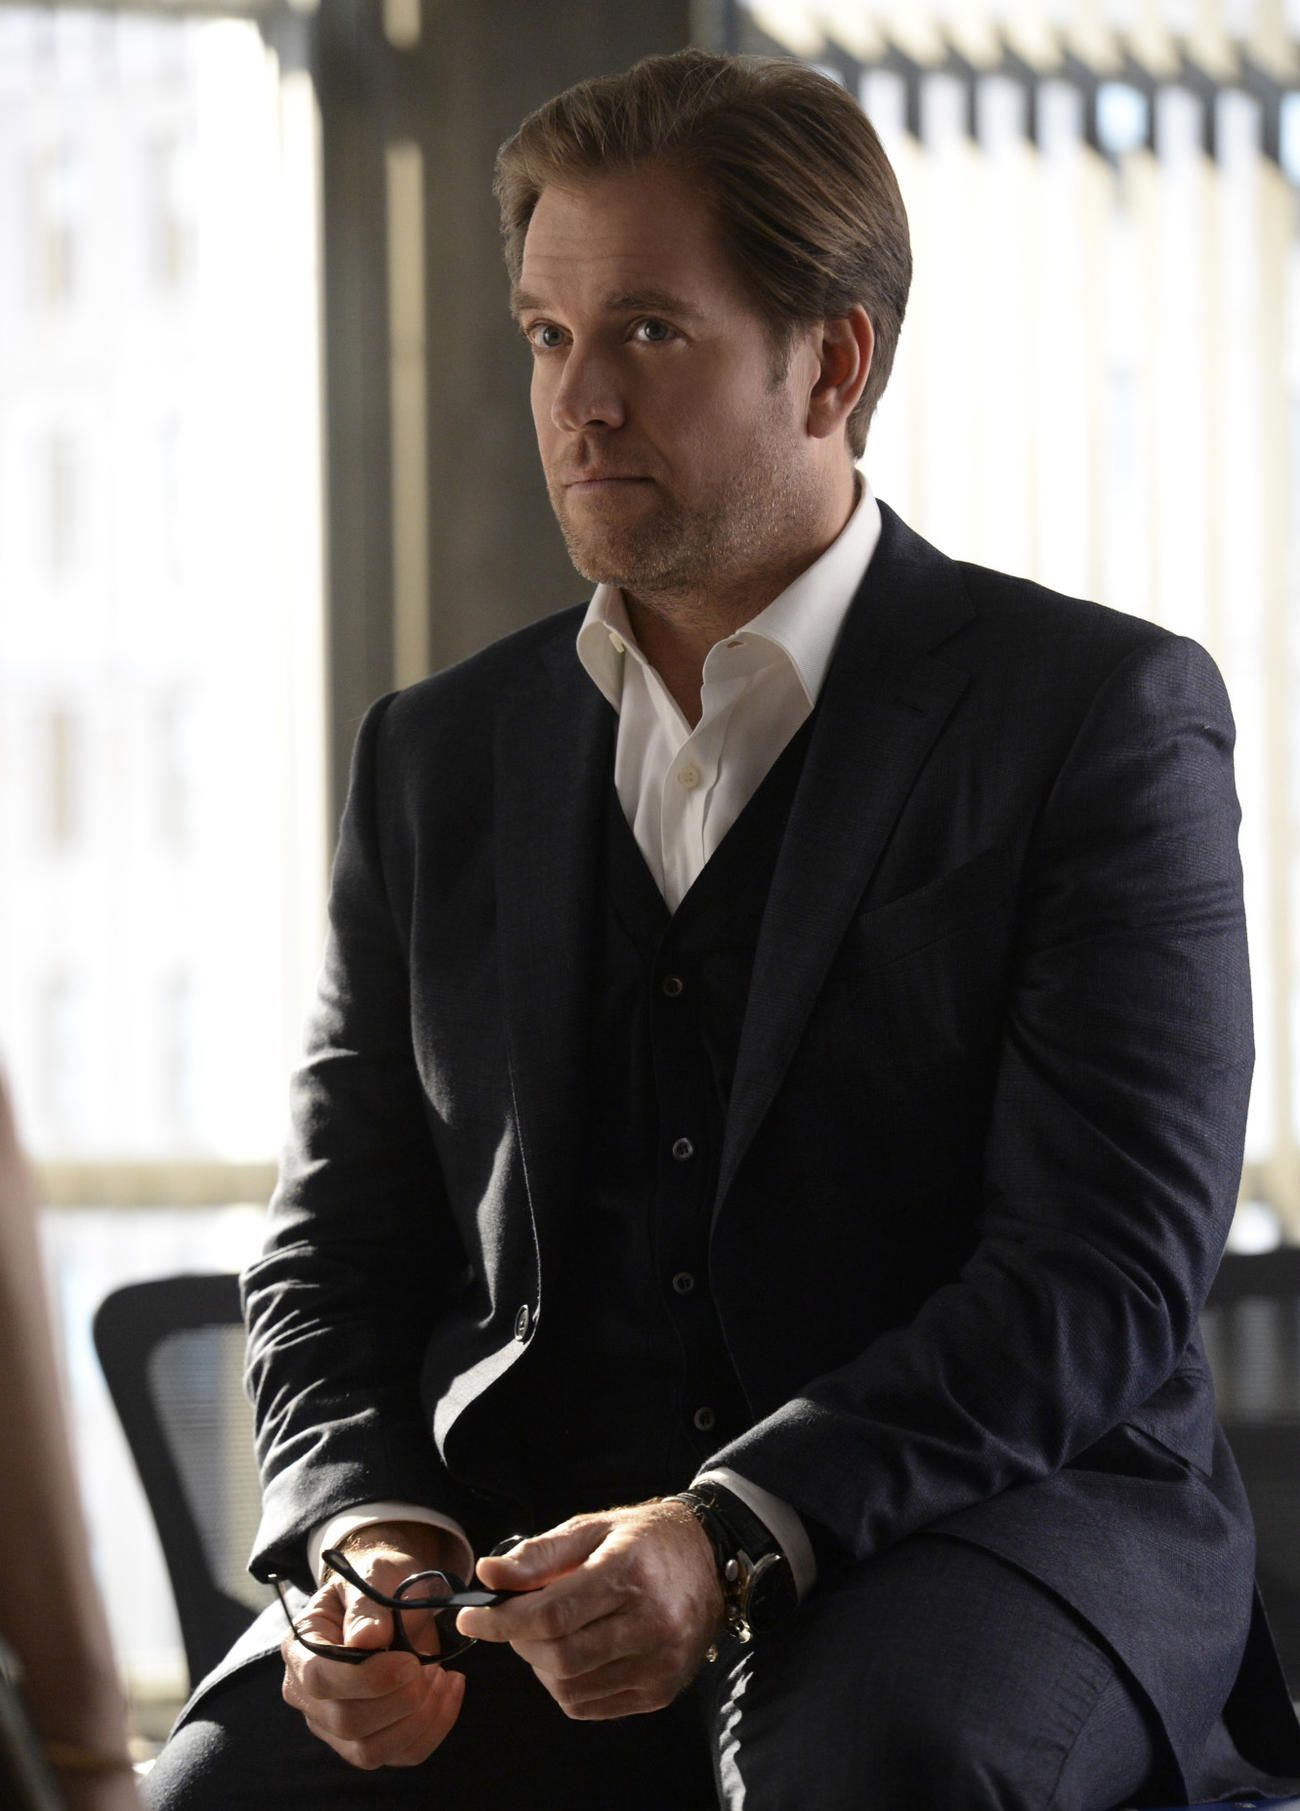 Michael Weatherly Reveals How He Channeled Tony DiNozzo for Bull